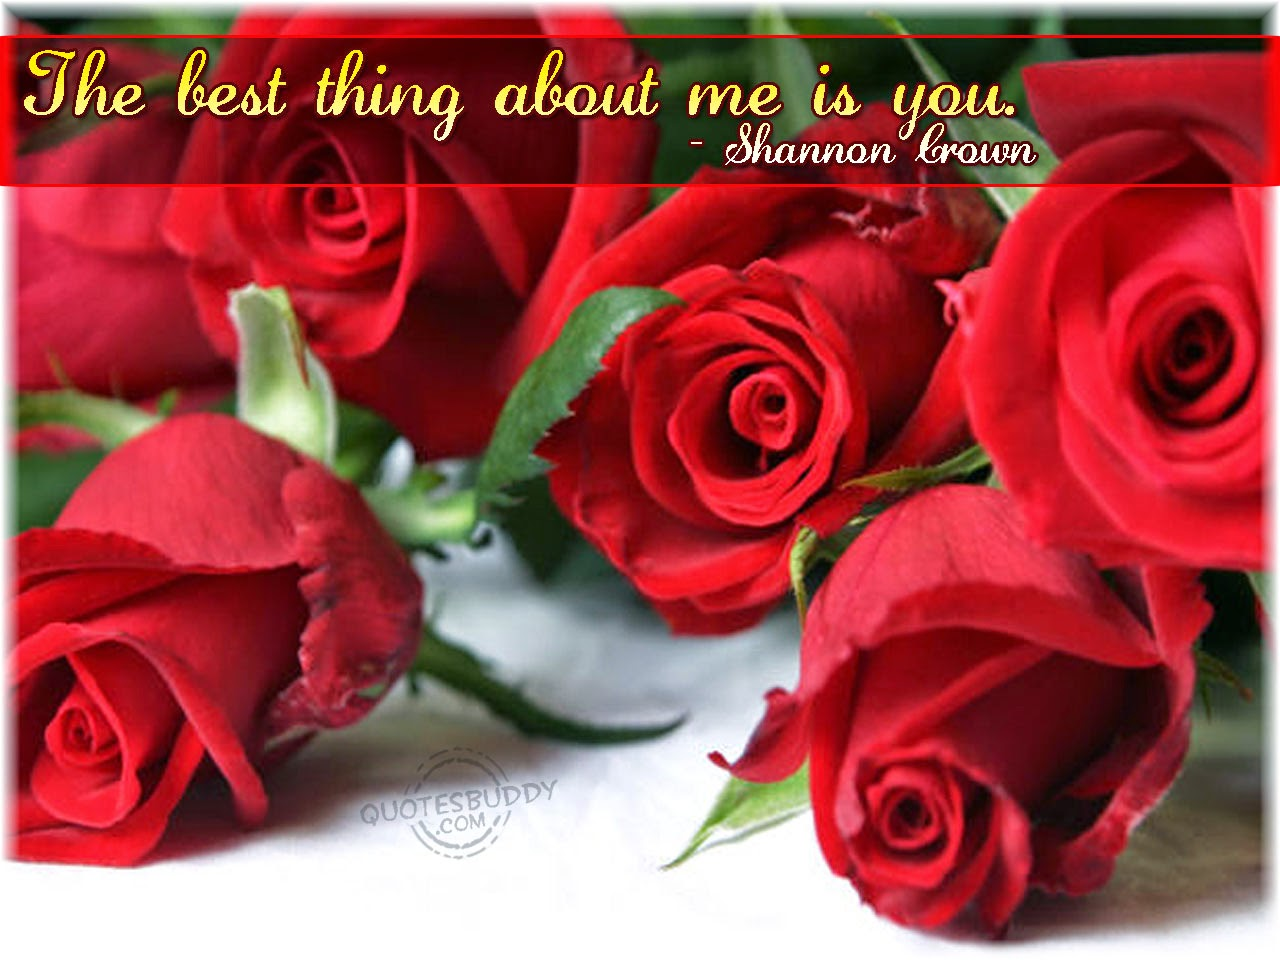 Happy Rose Day Pic Quotes Sms Images Wallpapers 2019 Earticleblog